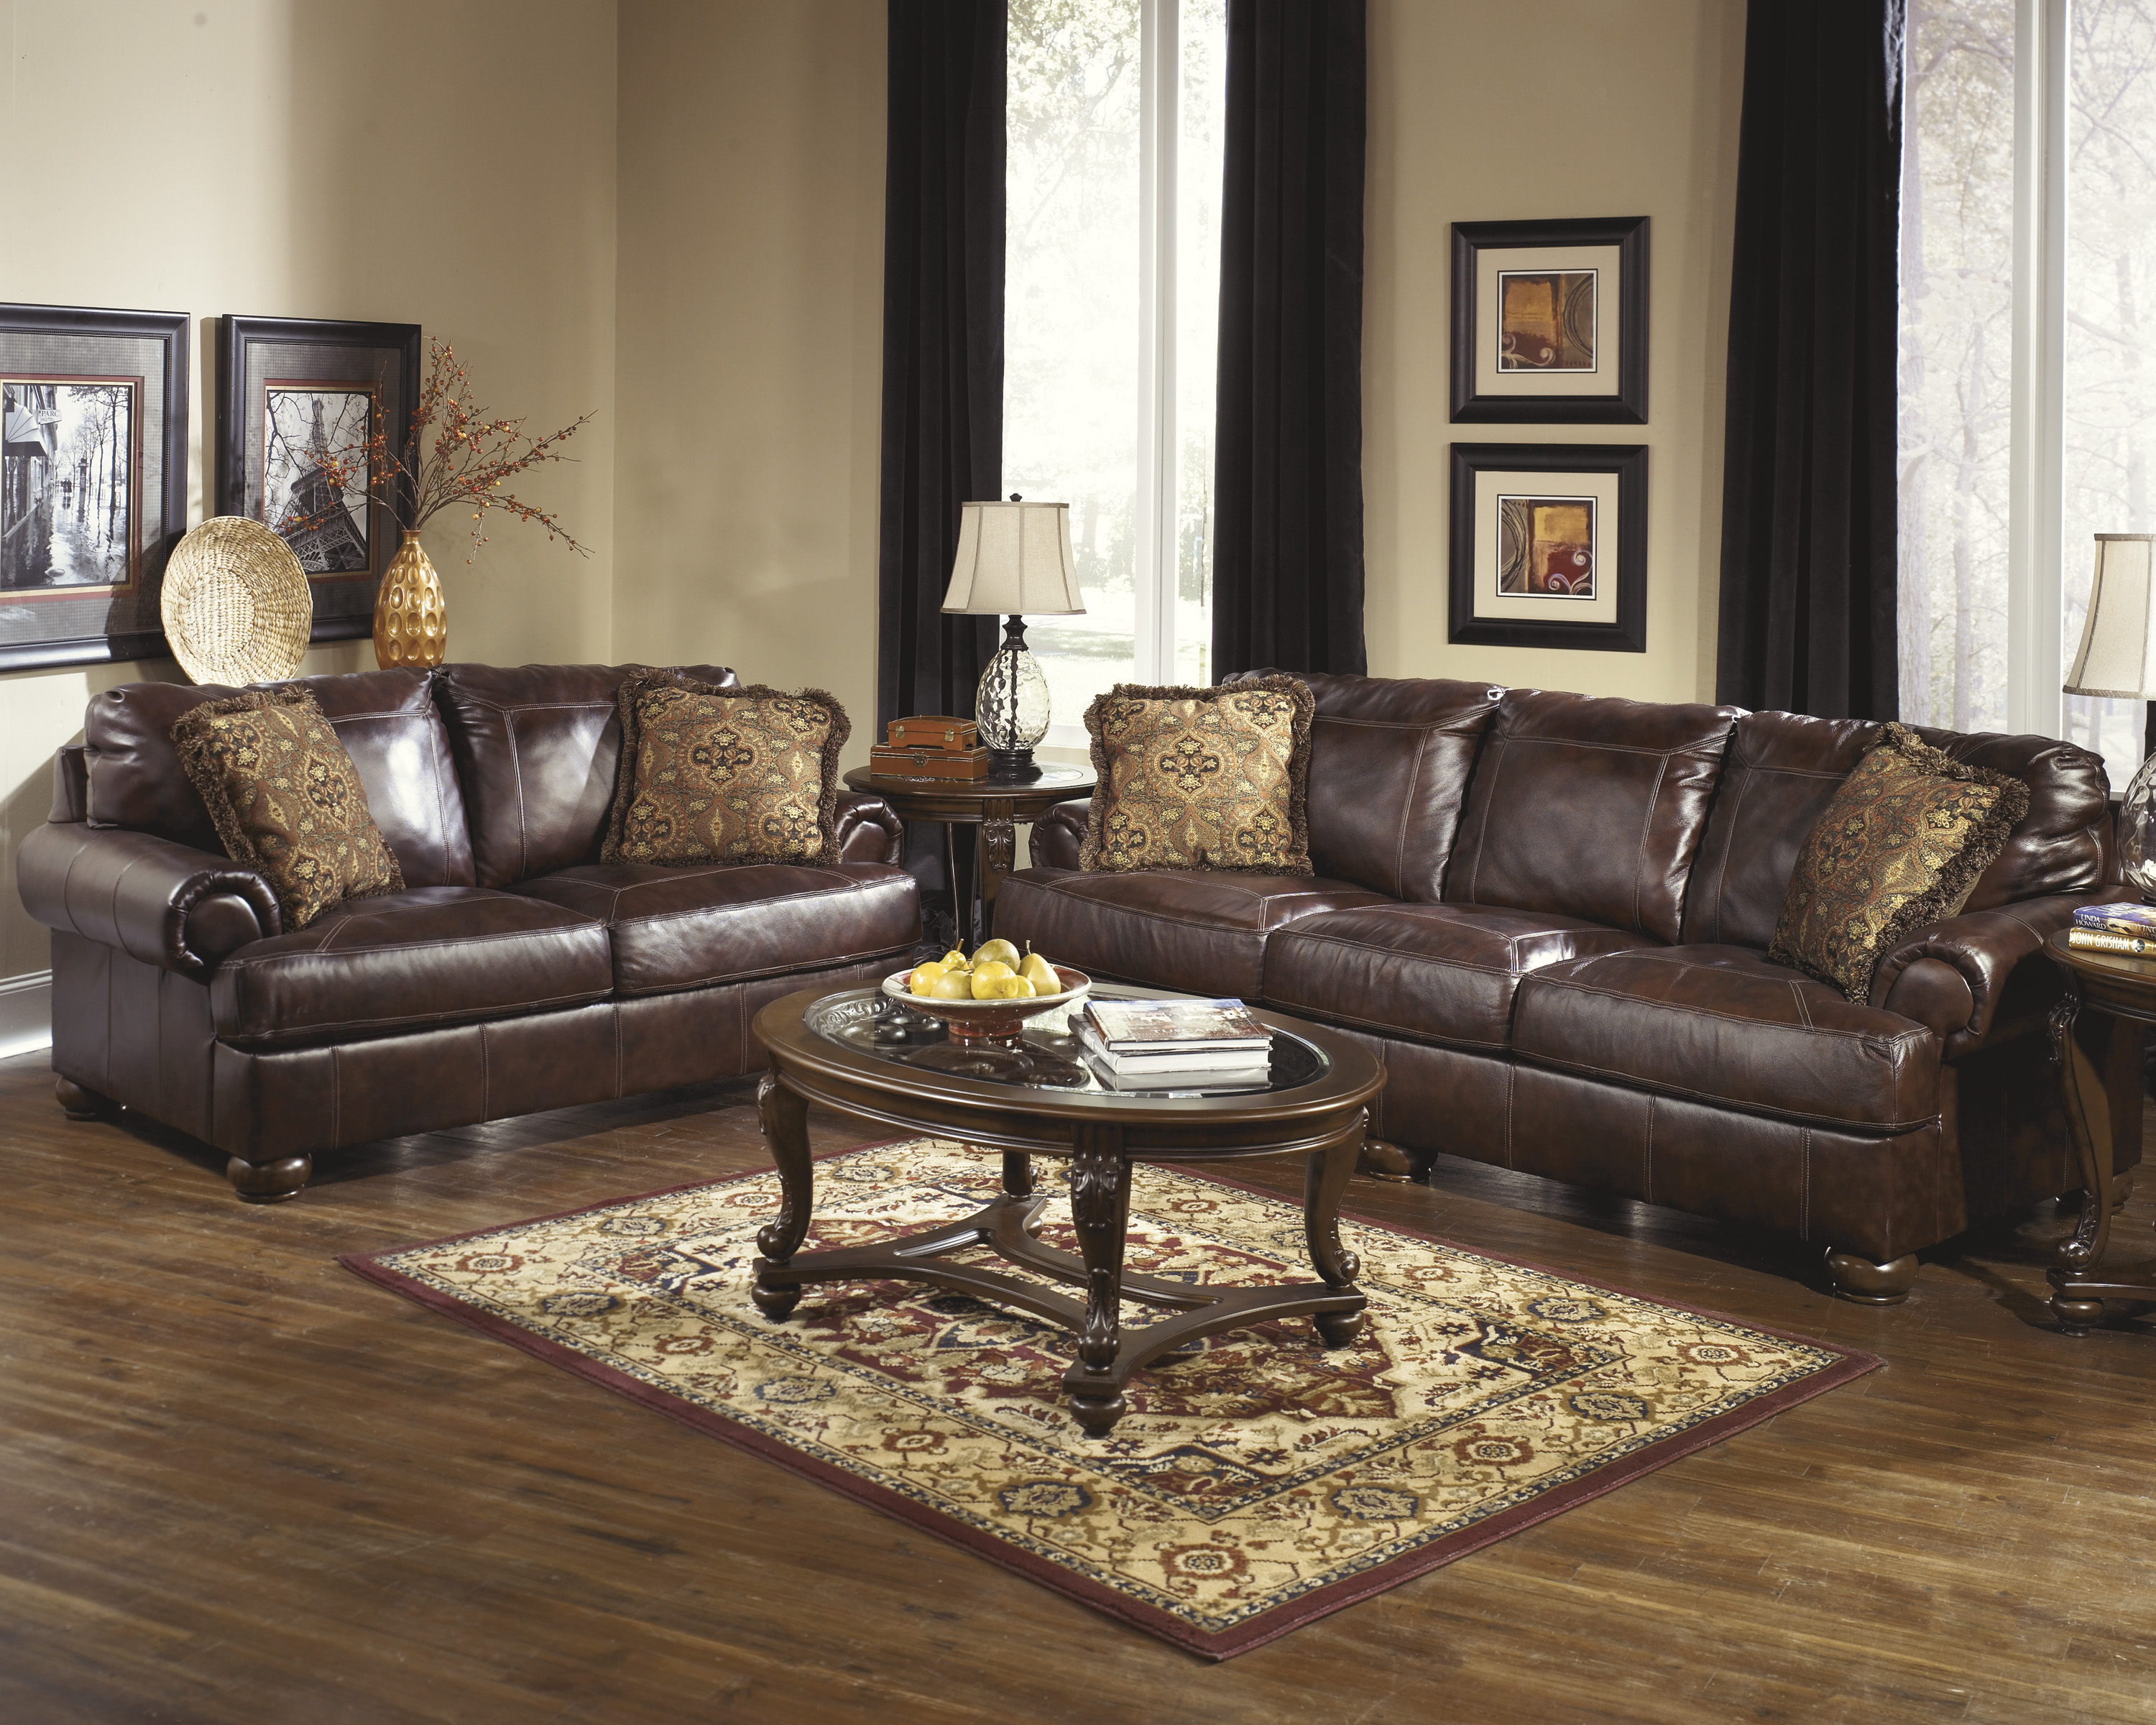 Emelen Sofa And Loveseat Ace Rent To Own Rent To Own Sofa Loveseat Set Lease Options